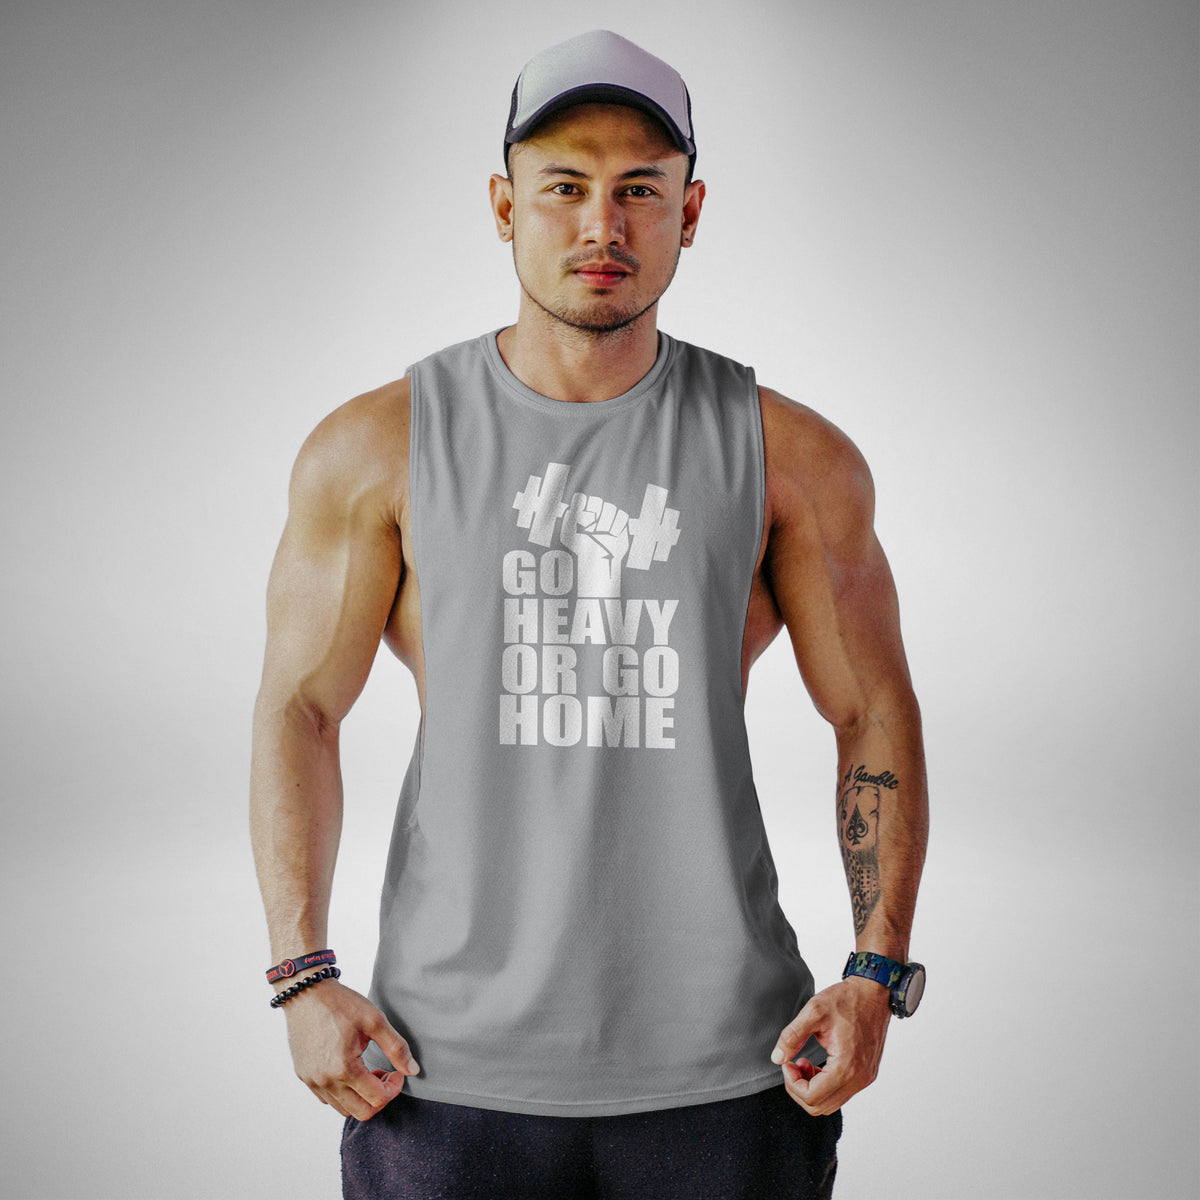 AM108 Go Heavy Or Go Home Openside Tank Top